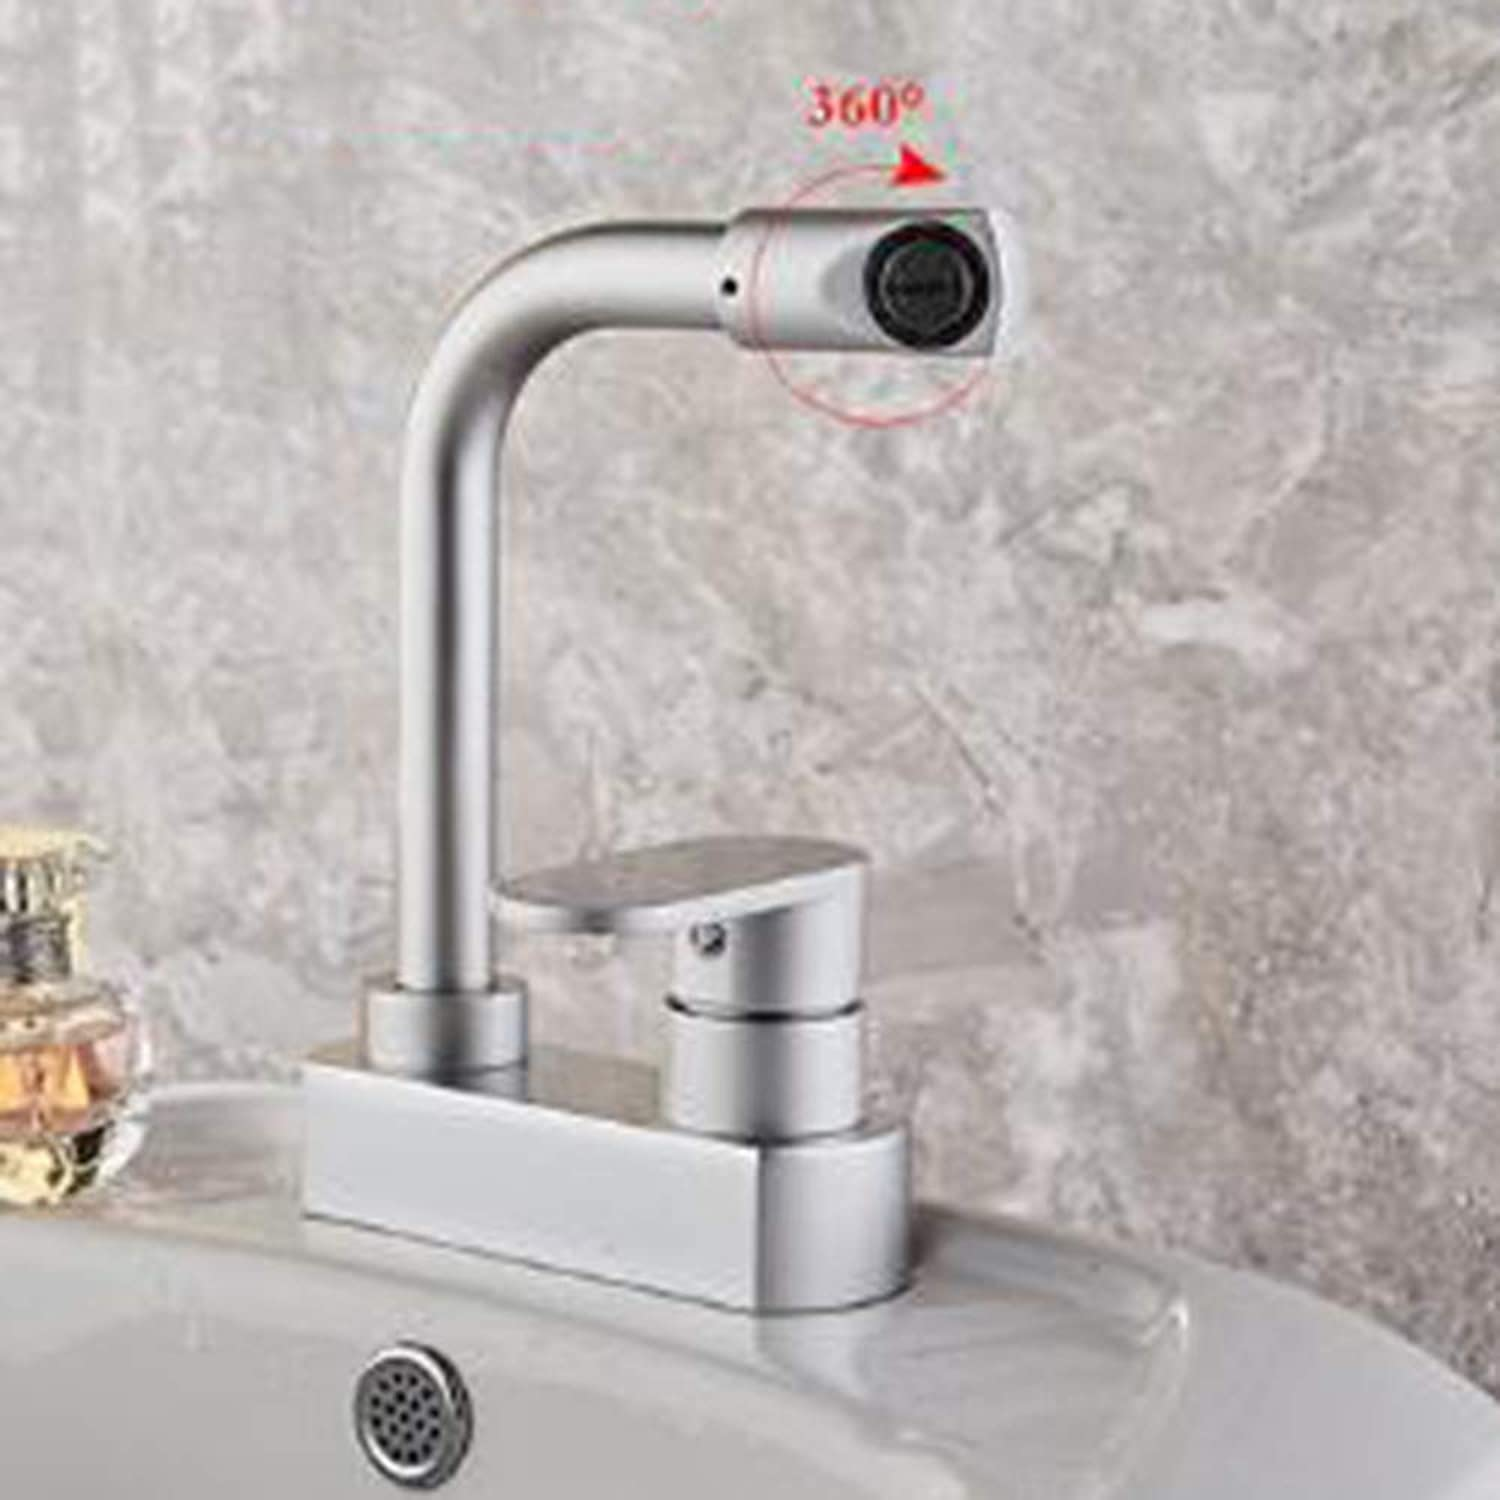 Kitchen Sink Faucet Basin Faucet, Bathroom Faucet Stainless Steel tap Modern Commercial Single Hand Down Kitchen Bathroom Bathroom -A